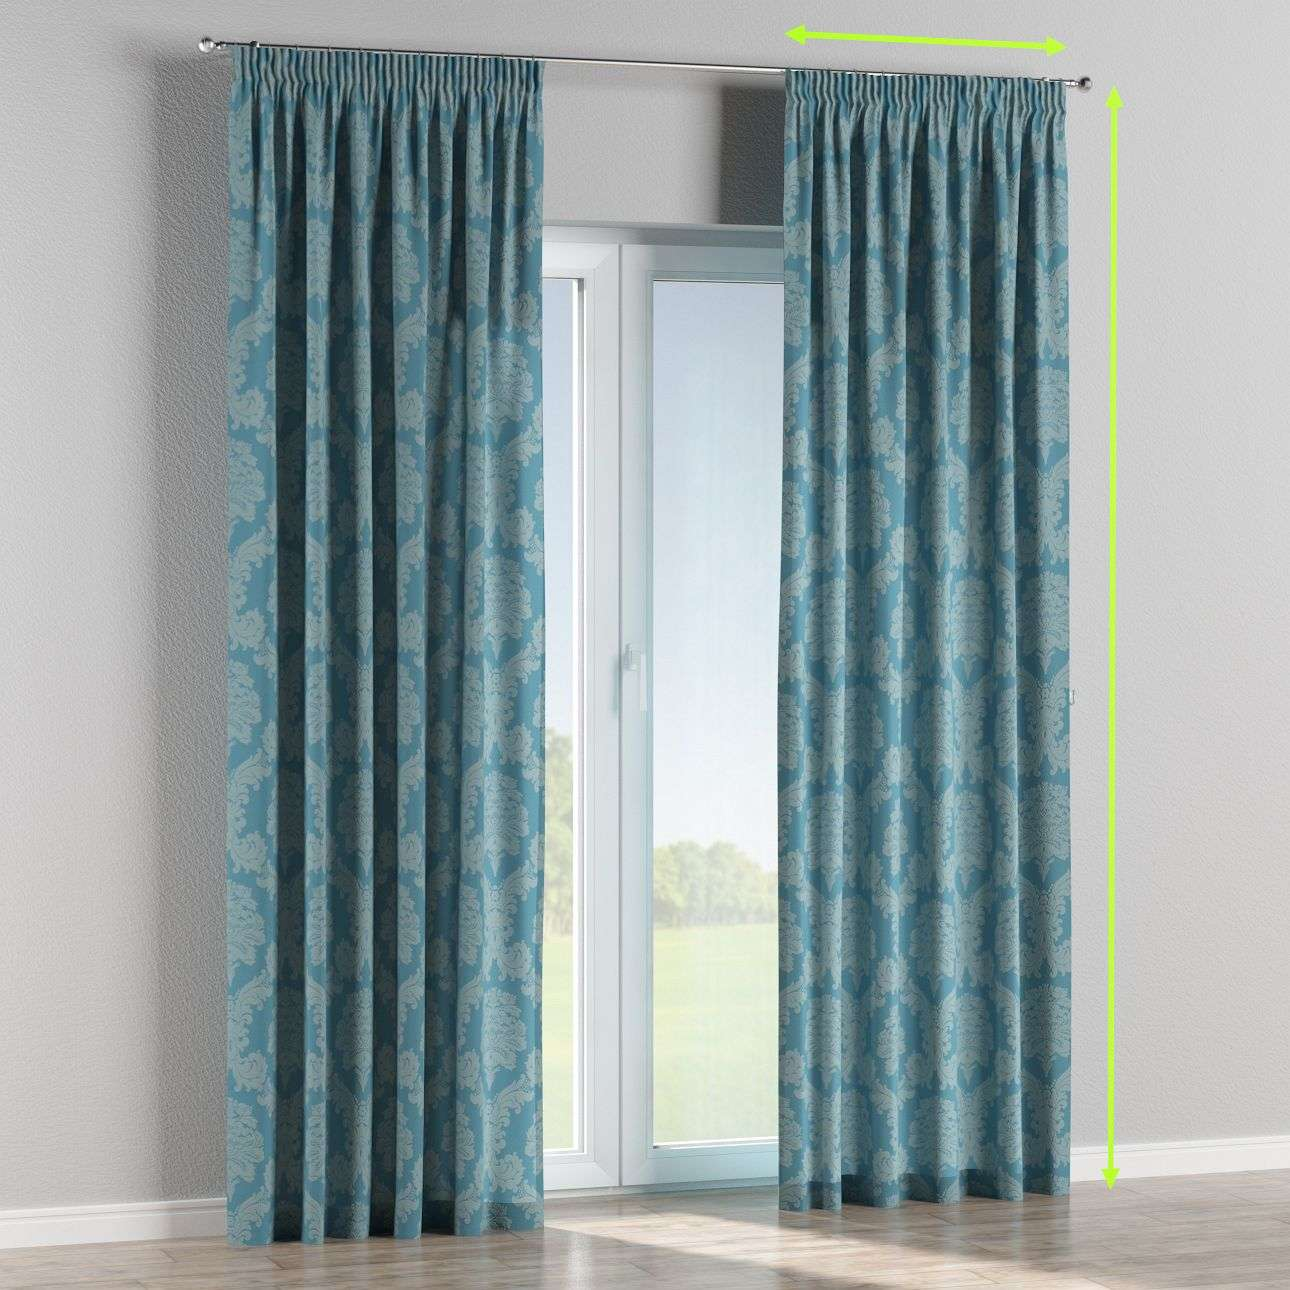 Pencil pleat curtain in collection Damasco, fabric: 613-67